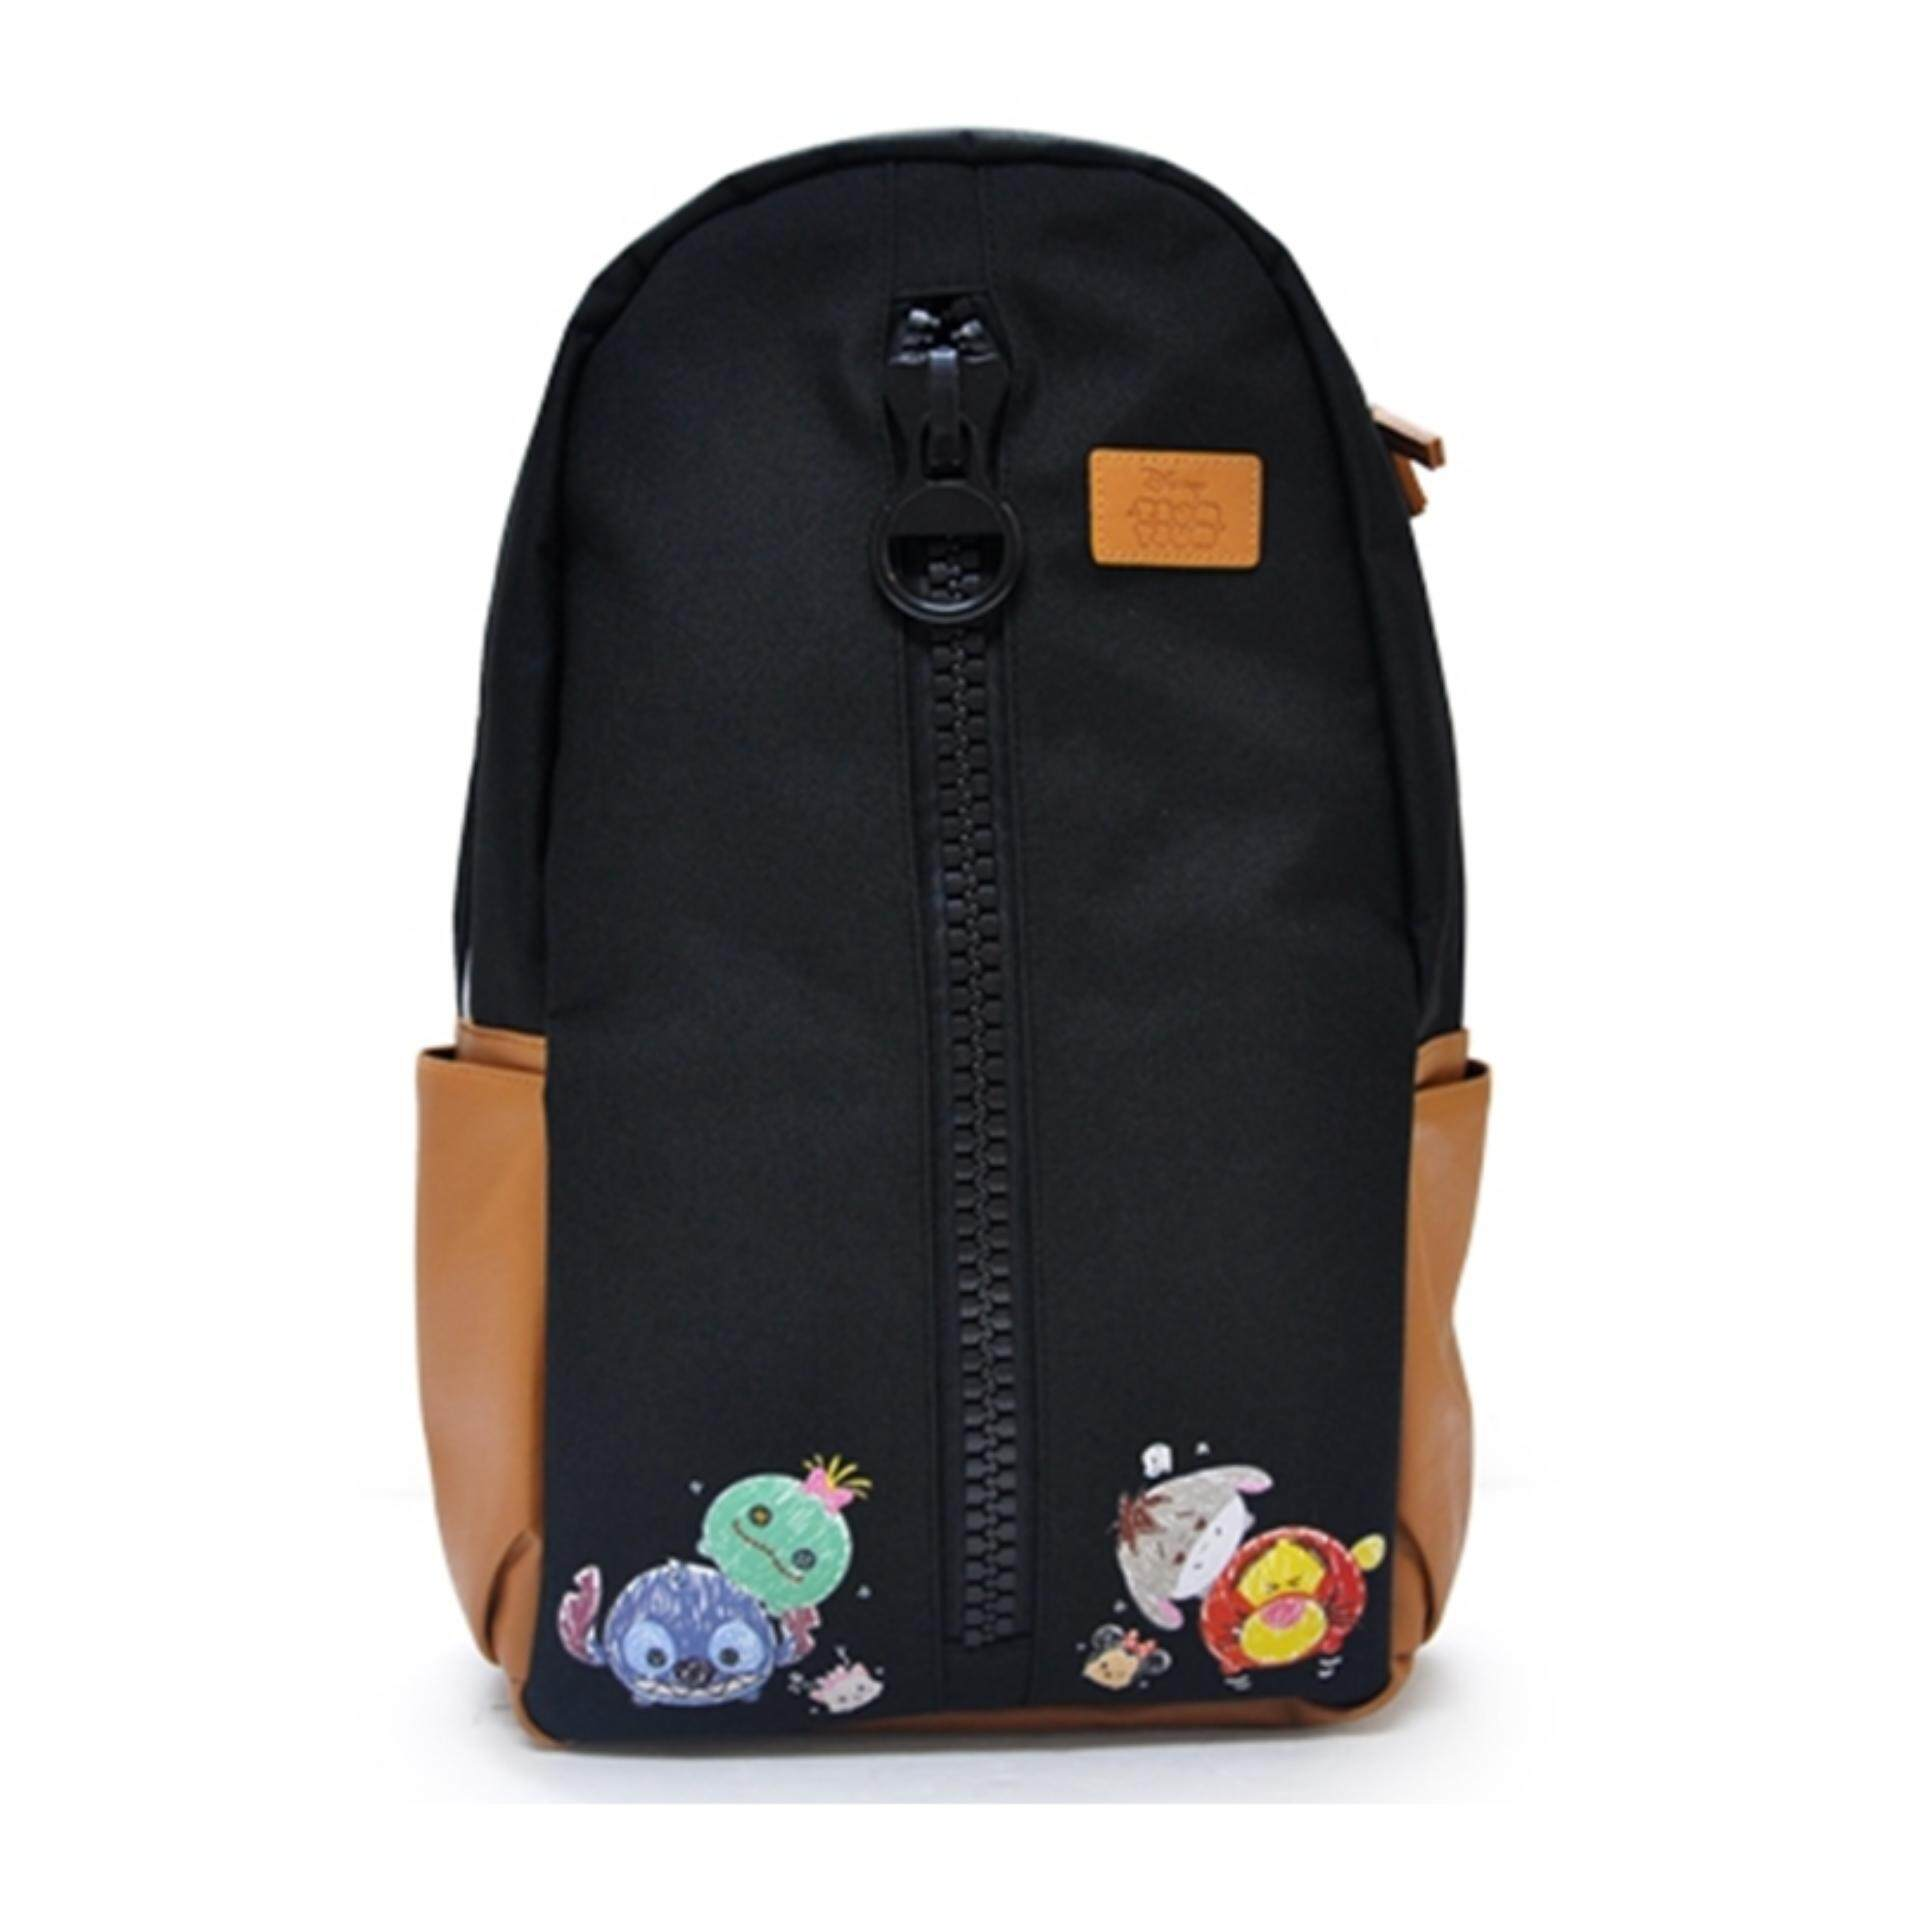 "Disney Tsum Tsum Giant Zipper Backpack 19"" Inches - Stitch Black Colour"